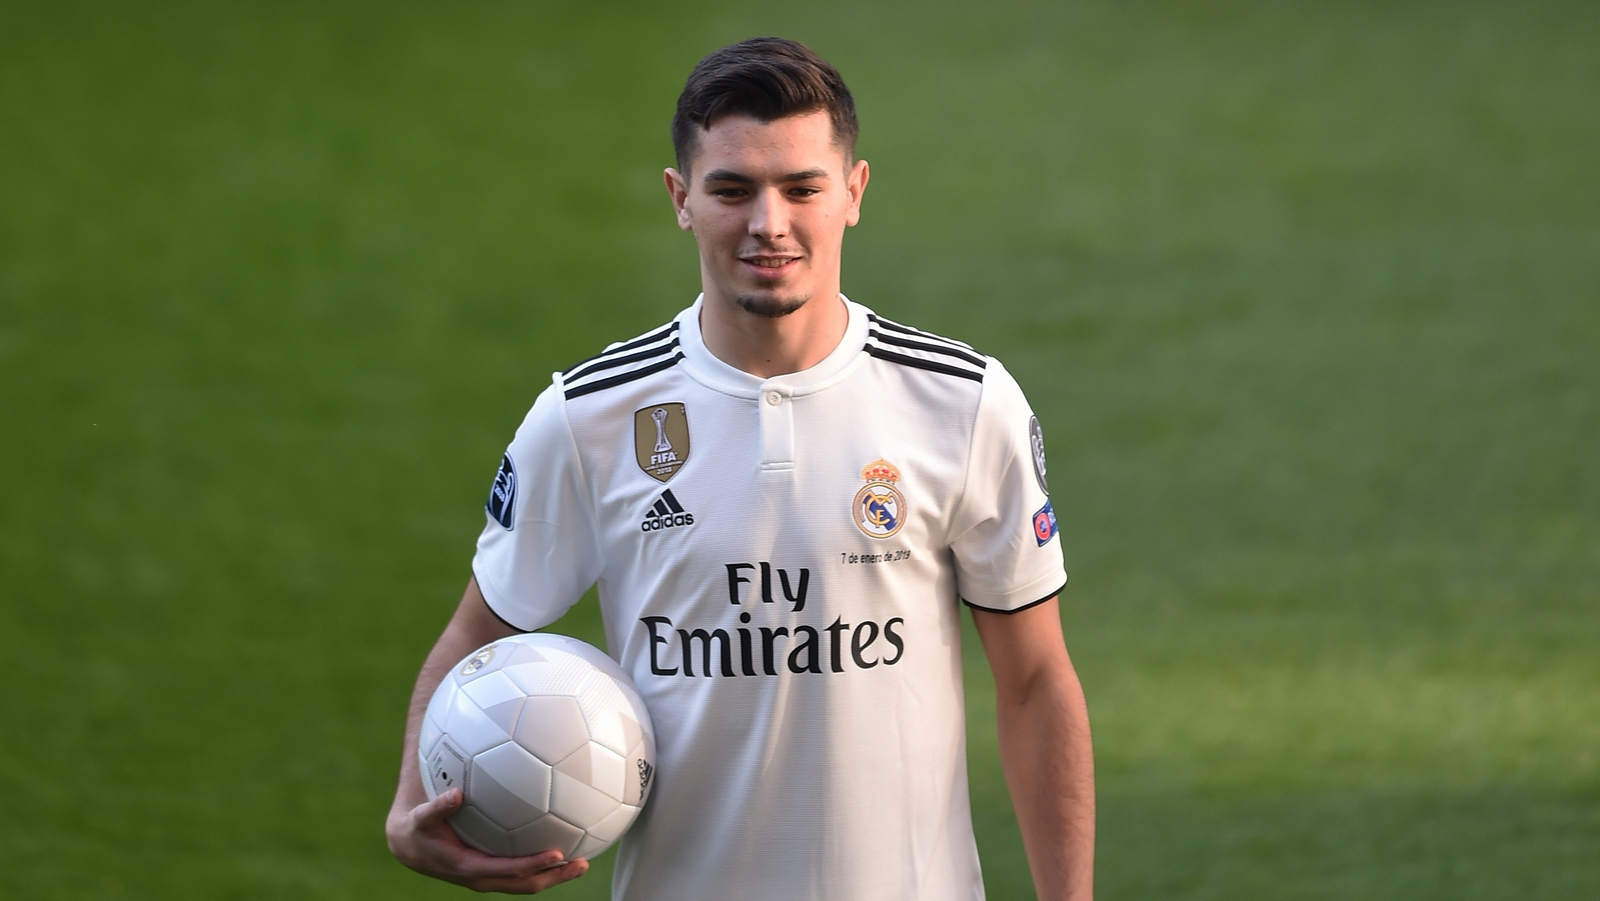 Real Madrid was the only choice - Brahim Diaz